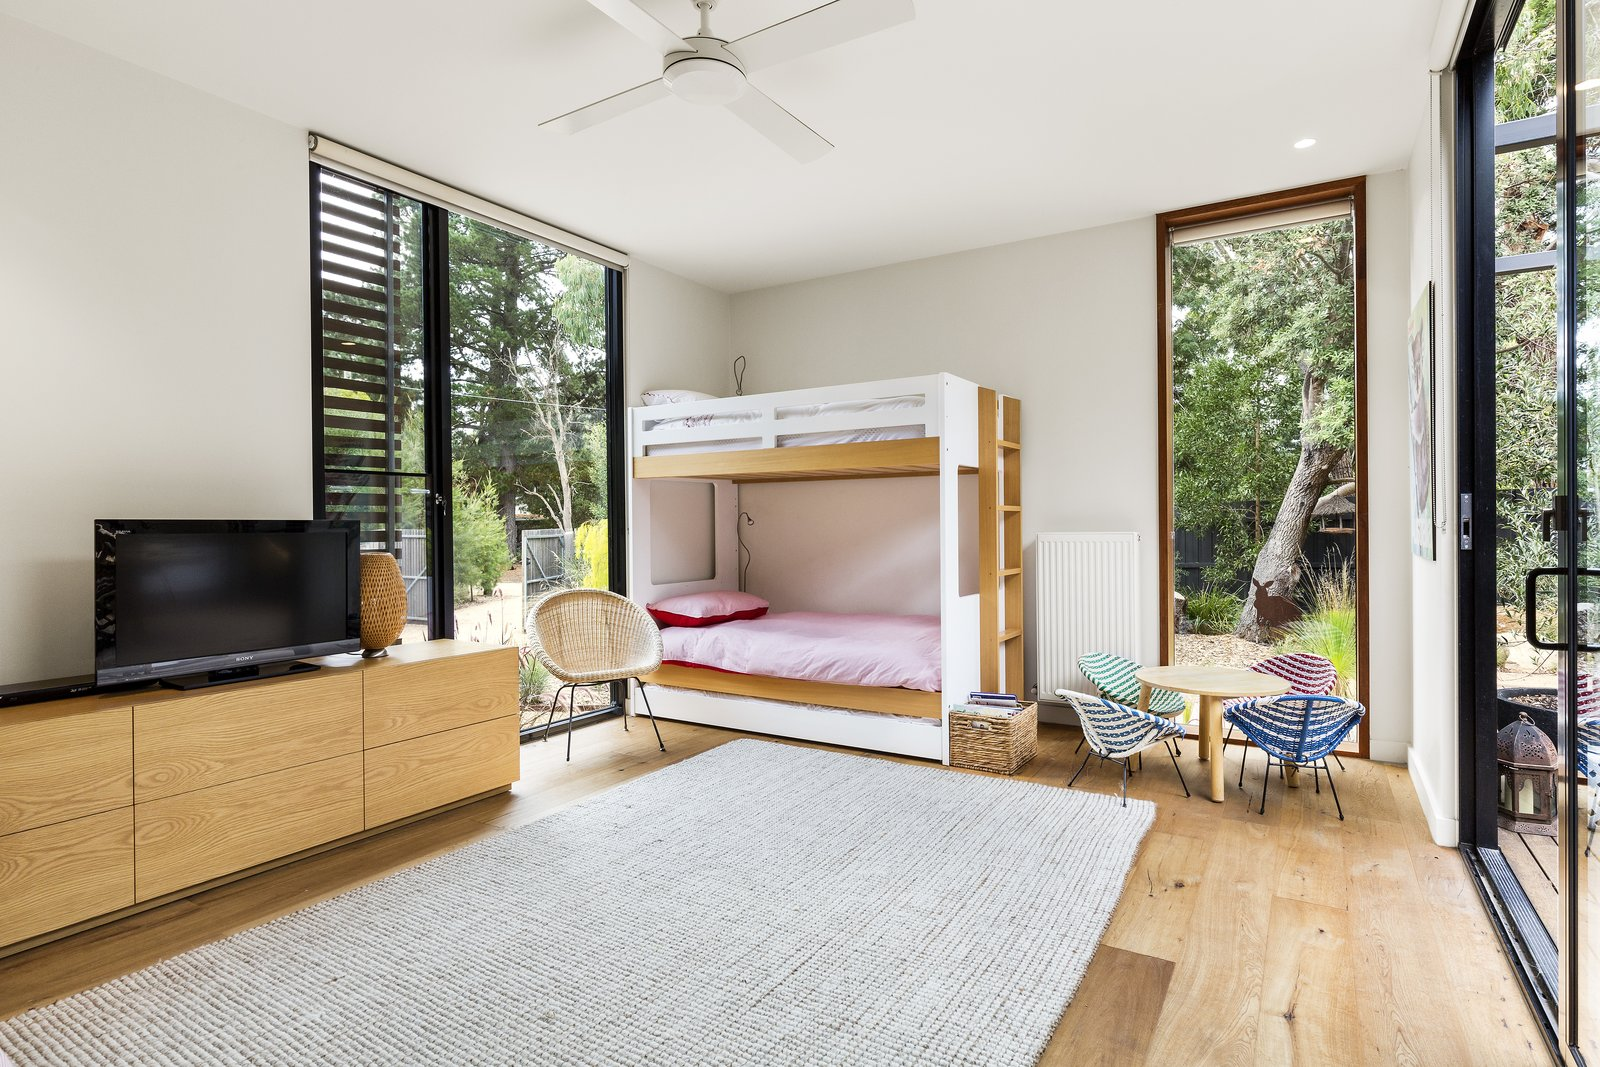 Tagged: Kids Room, Bedroom, Bunks, Storage, Chair, Medium Hardwood Floor, Neutral Gender, and Pre-Teen Age.  The Merricks Beach House by Prebuilt